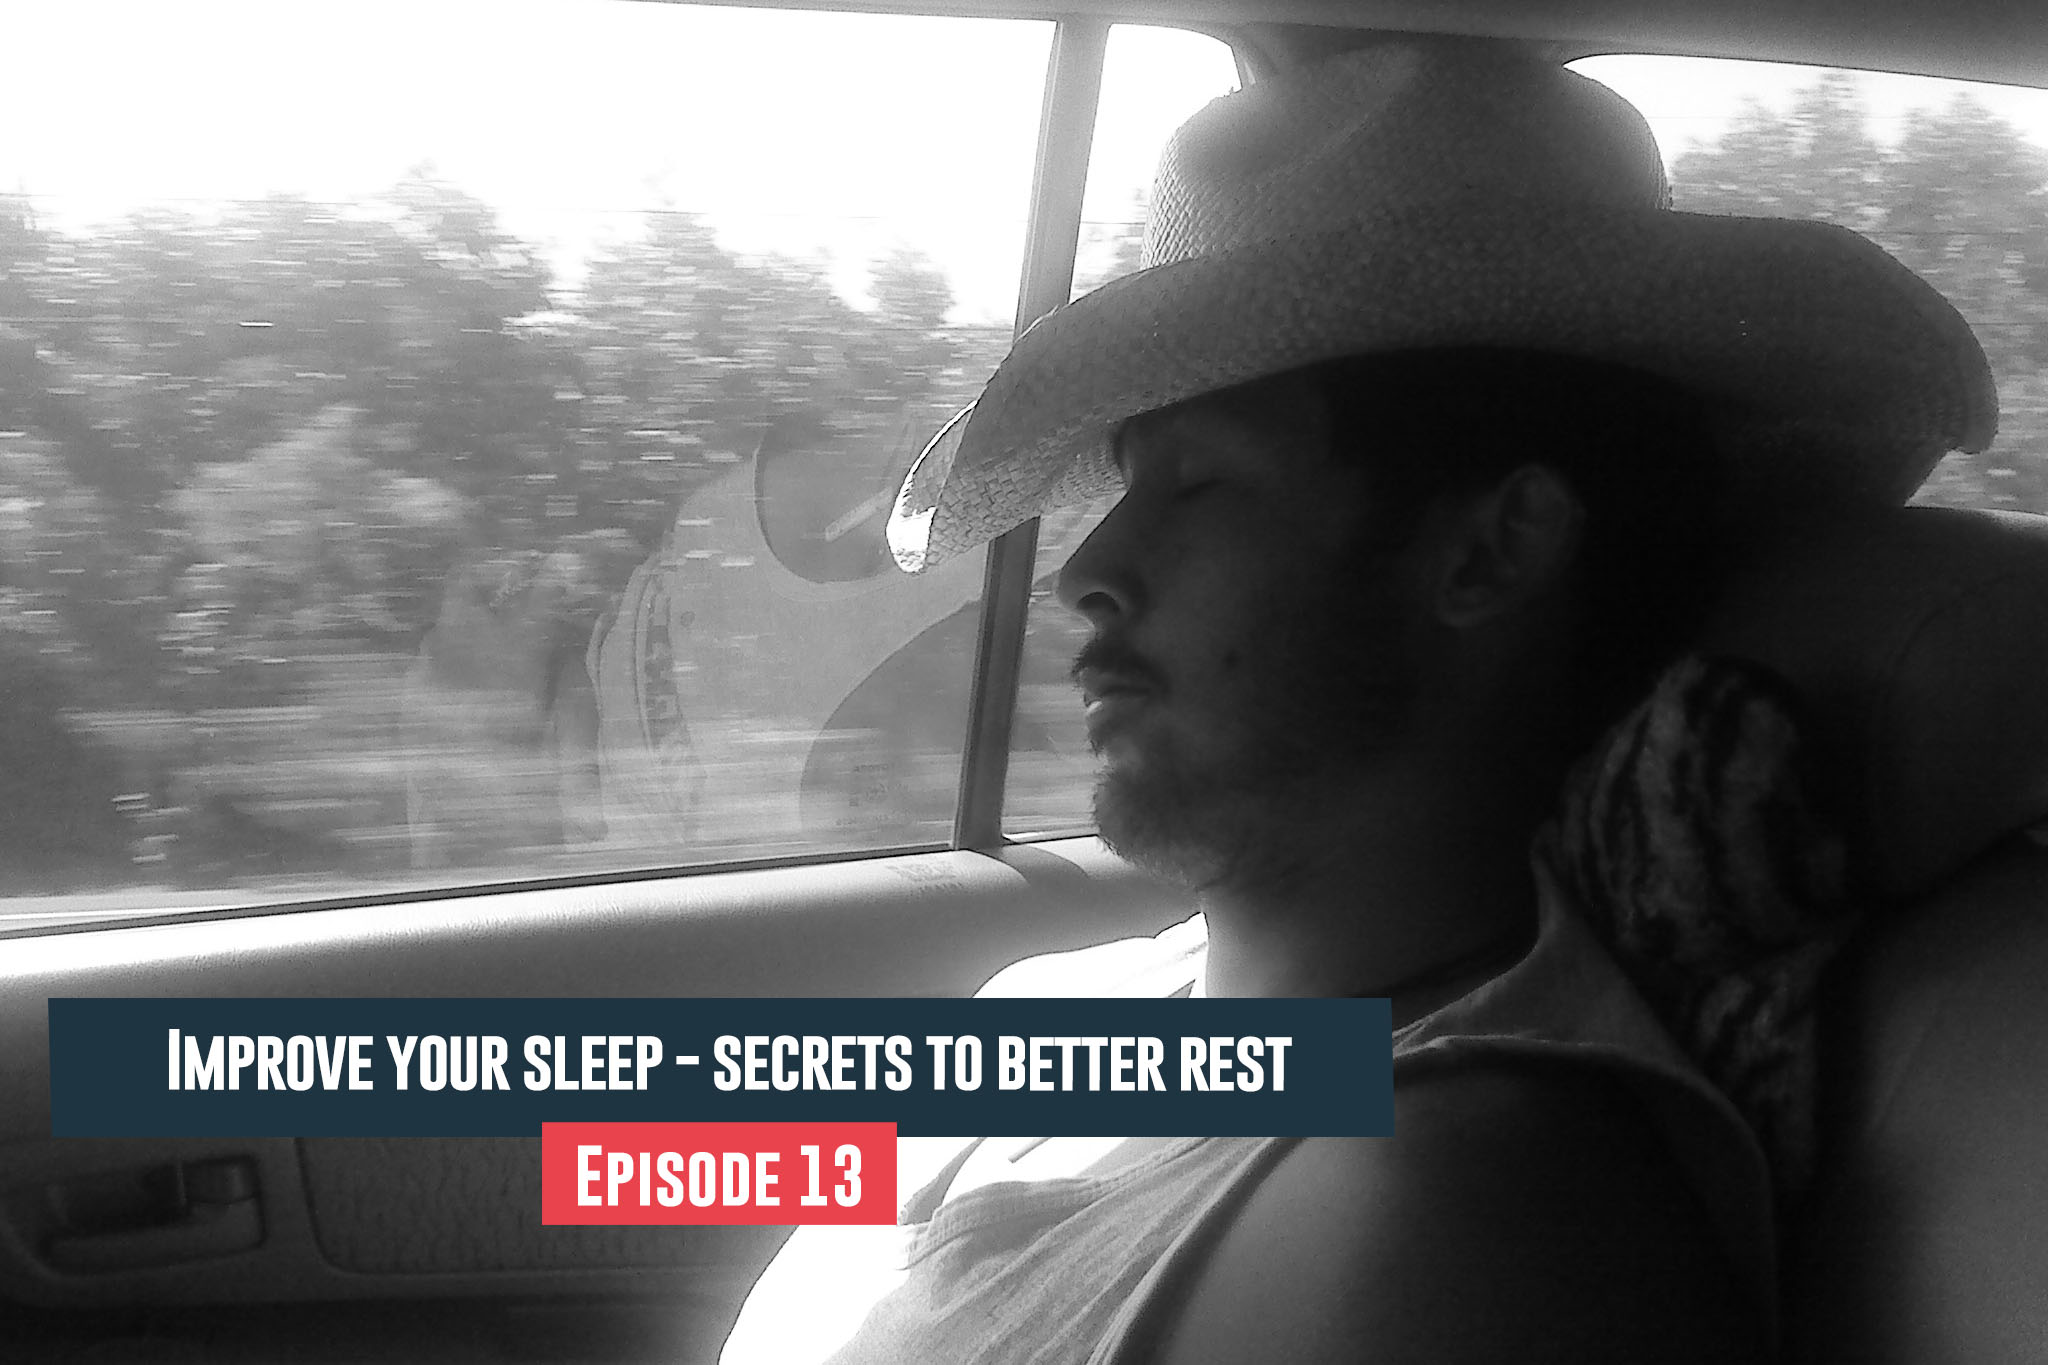 secrets to better rest